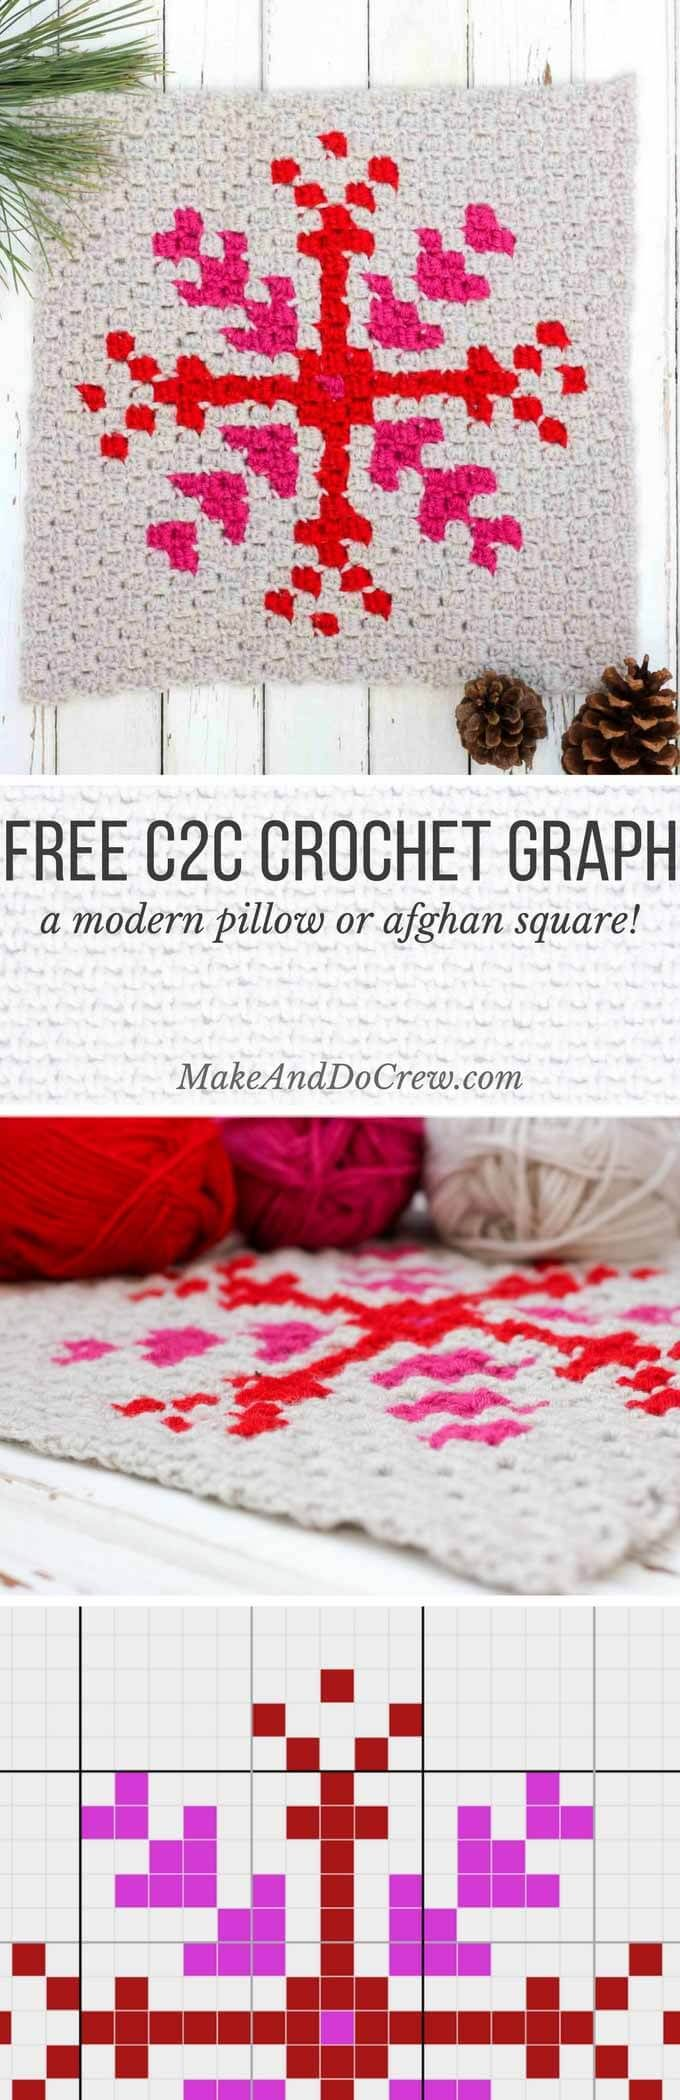 Snowflake Pattern - Free C2C Crochet Graph | Things To Crochet ...